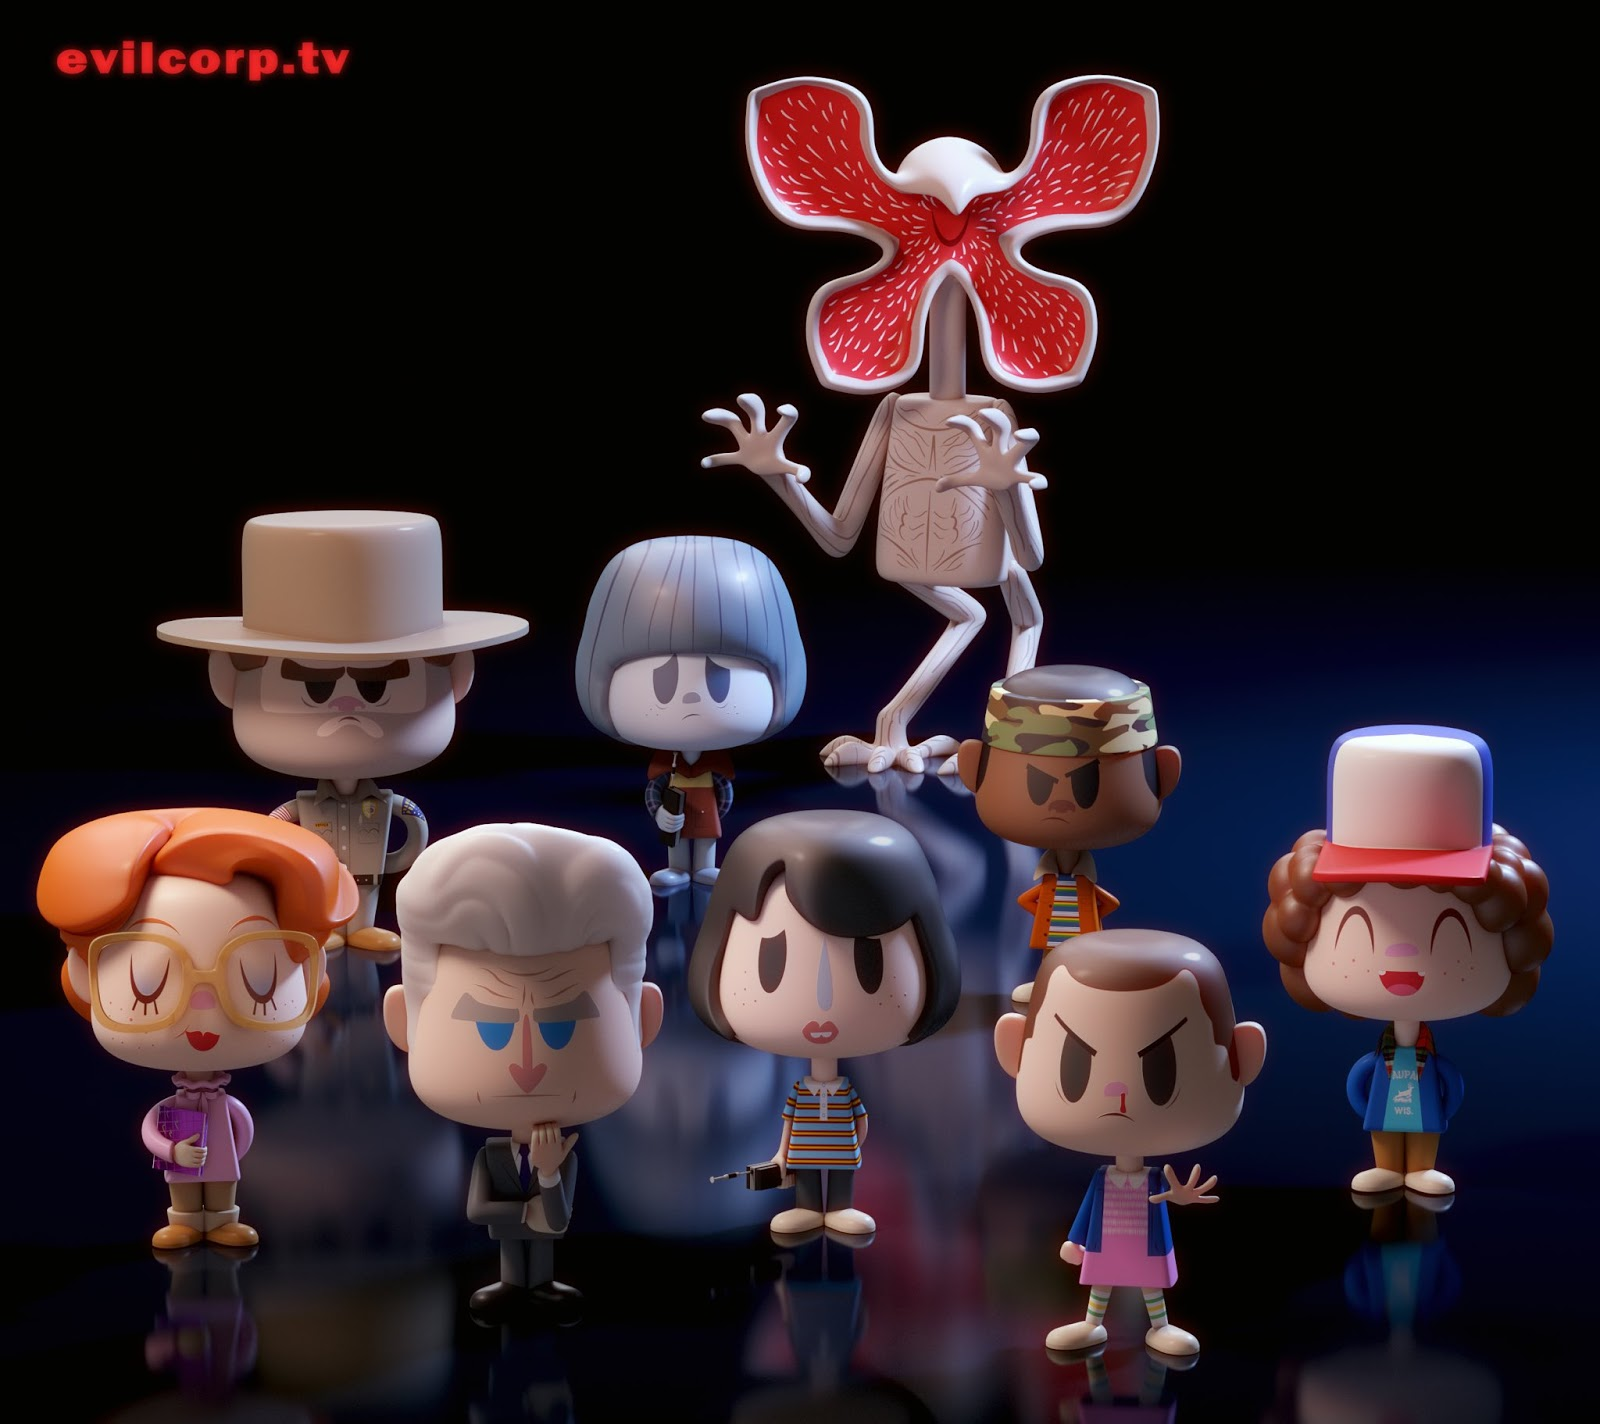 Stranger Things Toys : Things to do in los angeles stranger toys by evil corp